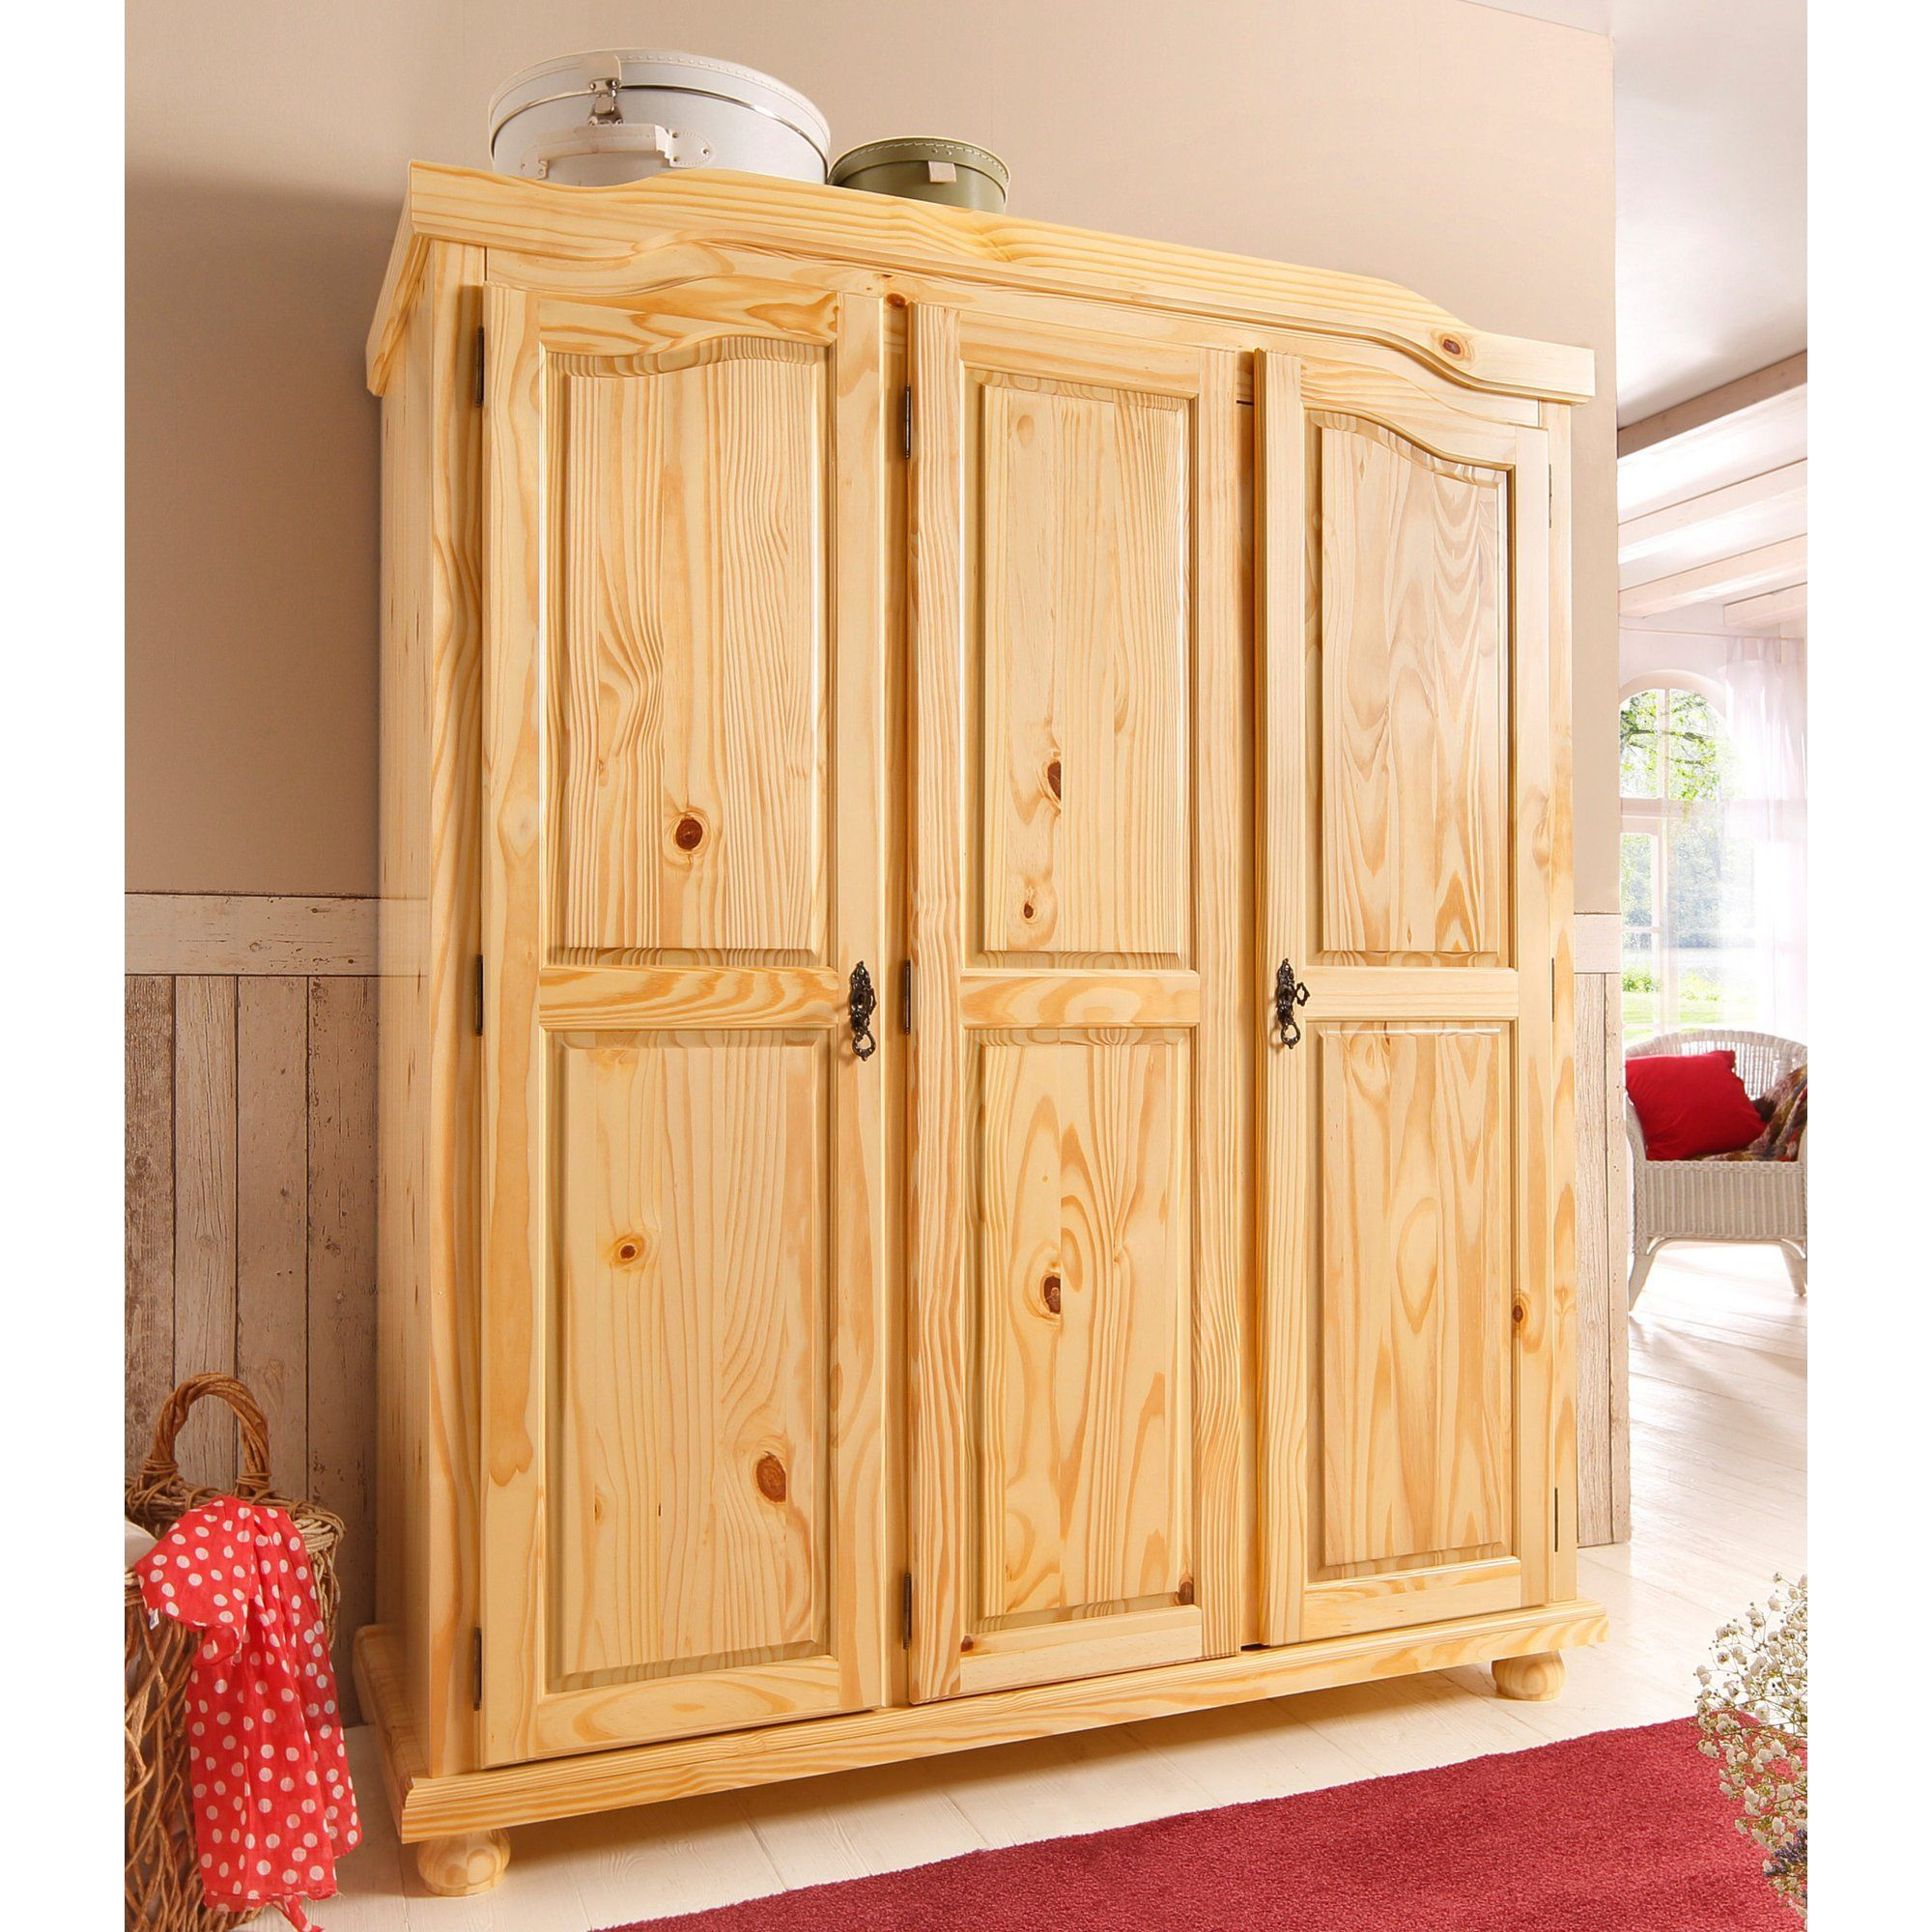 Armoire Penderie 3 Portes En Pin Massif Largeur 150 Cm Home  # Authentic Style Pin Teinte Miel